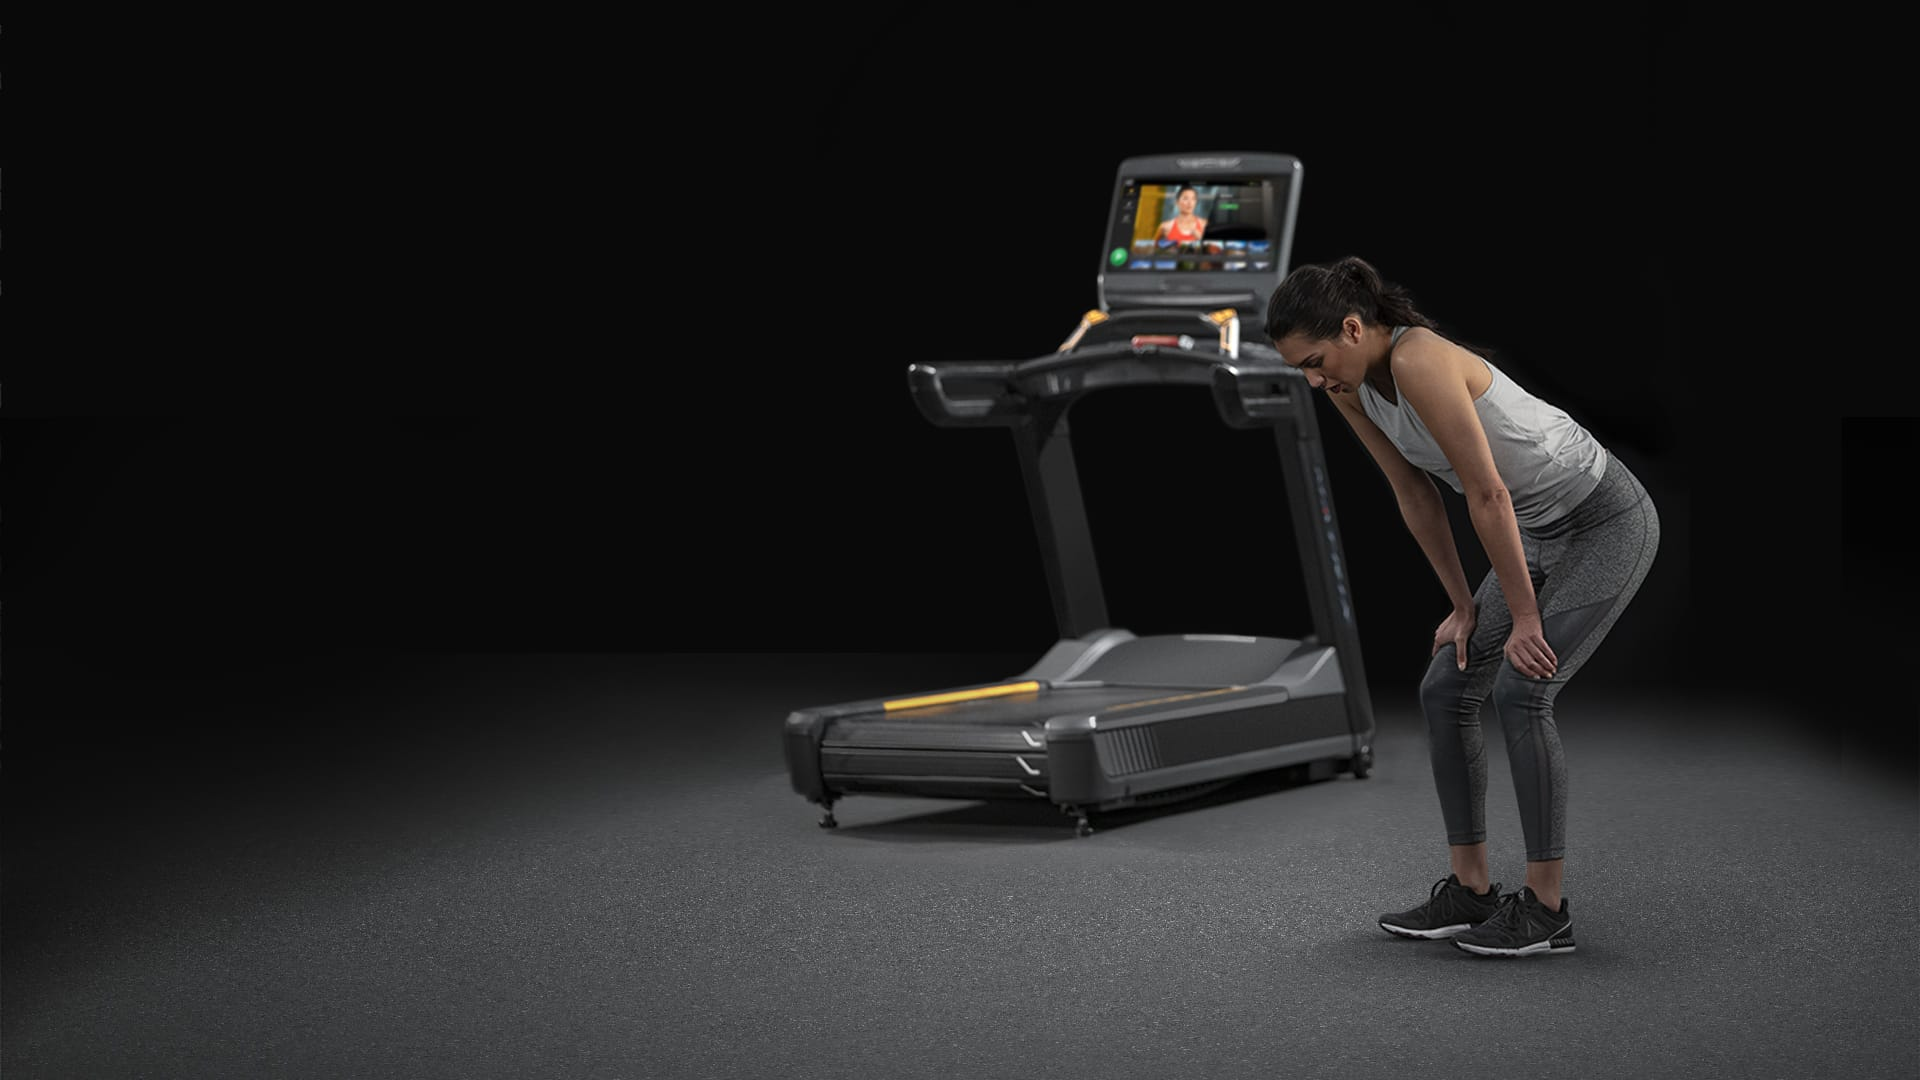 Why Youth Should Use Fitness Equipment